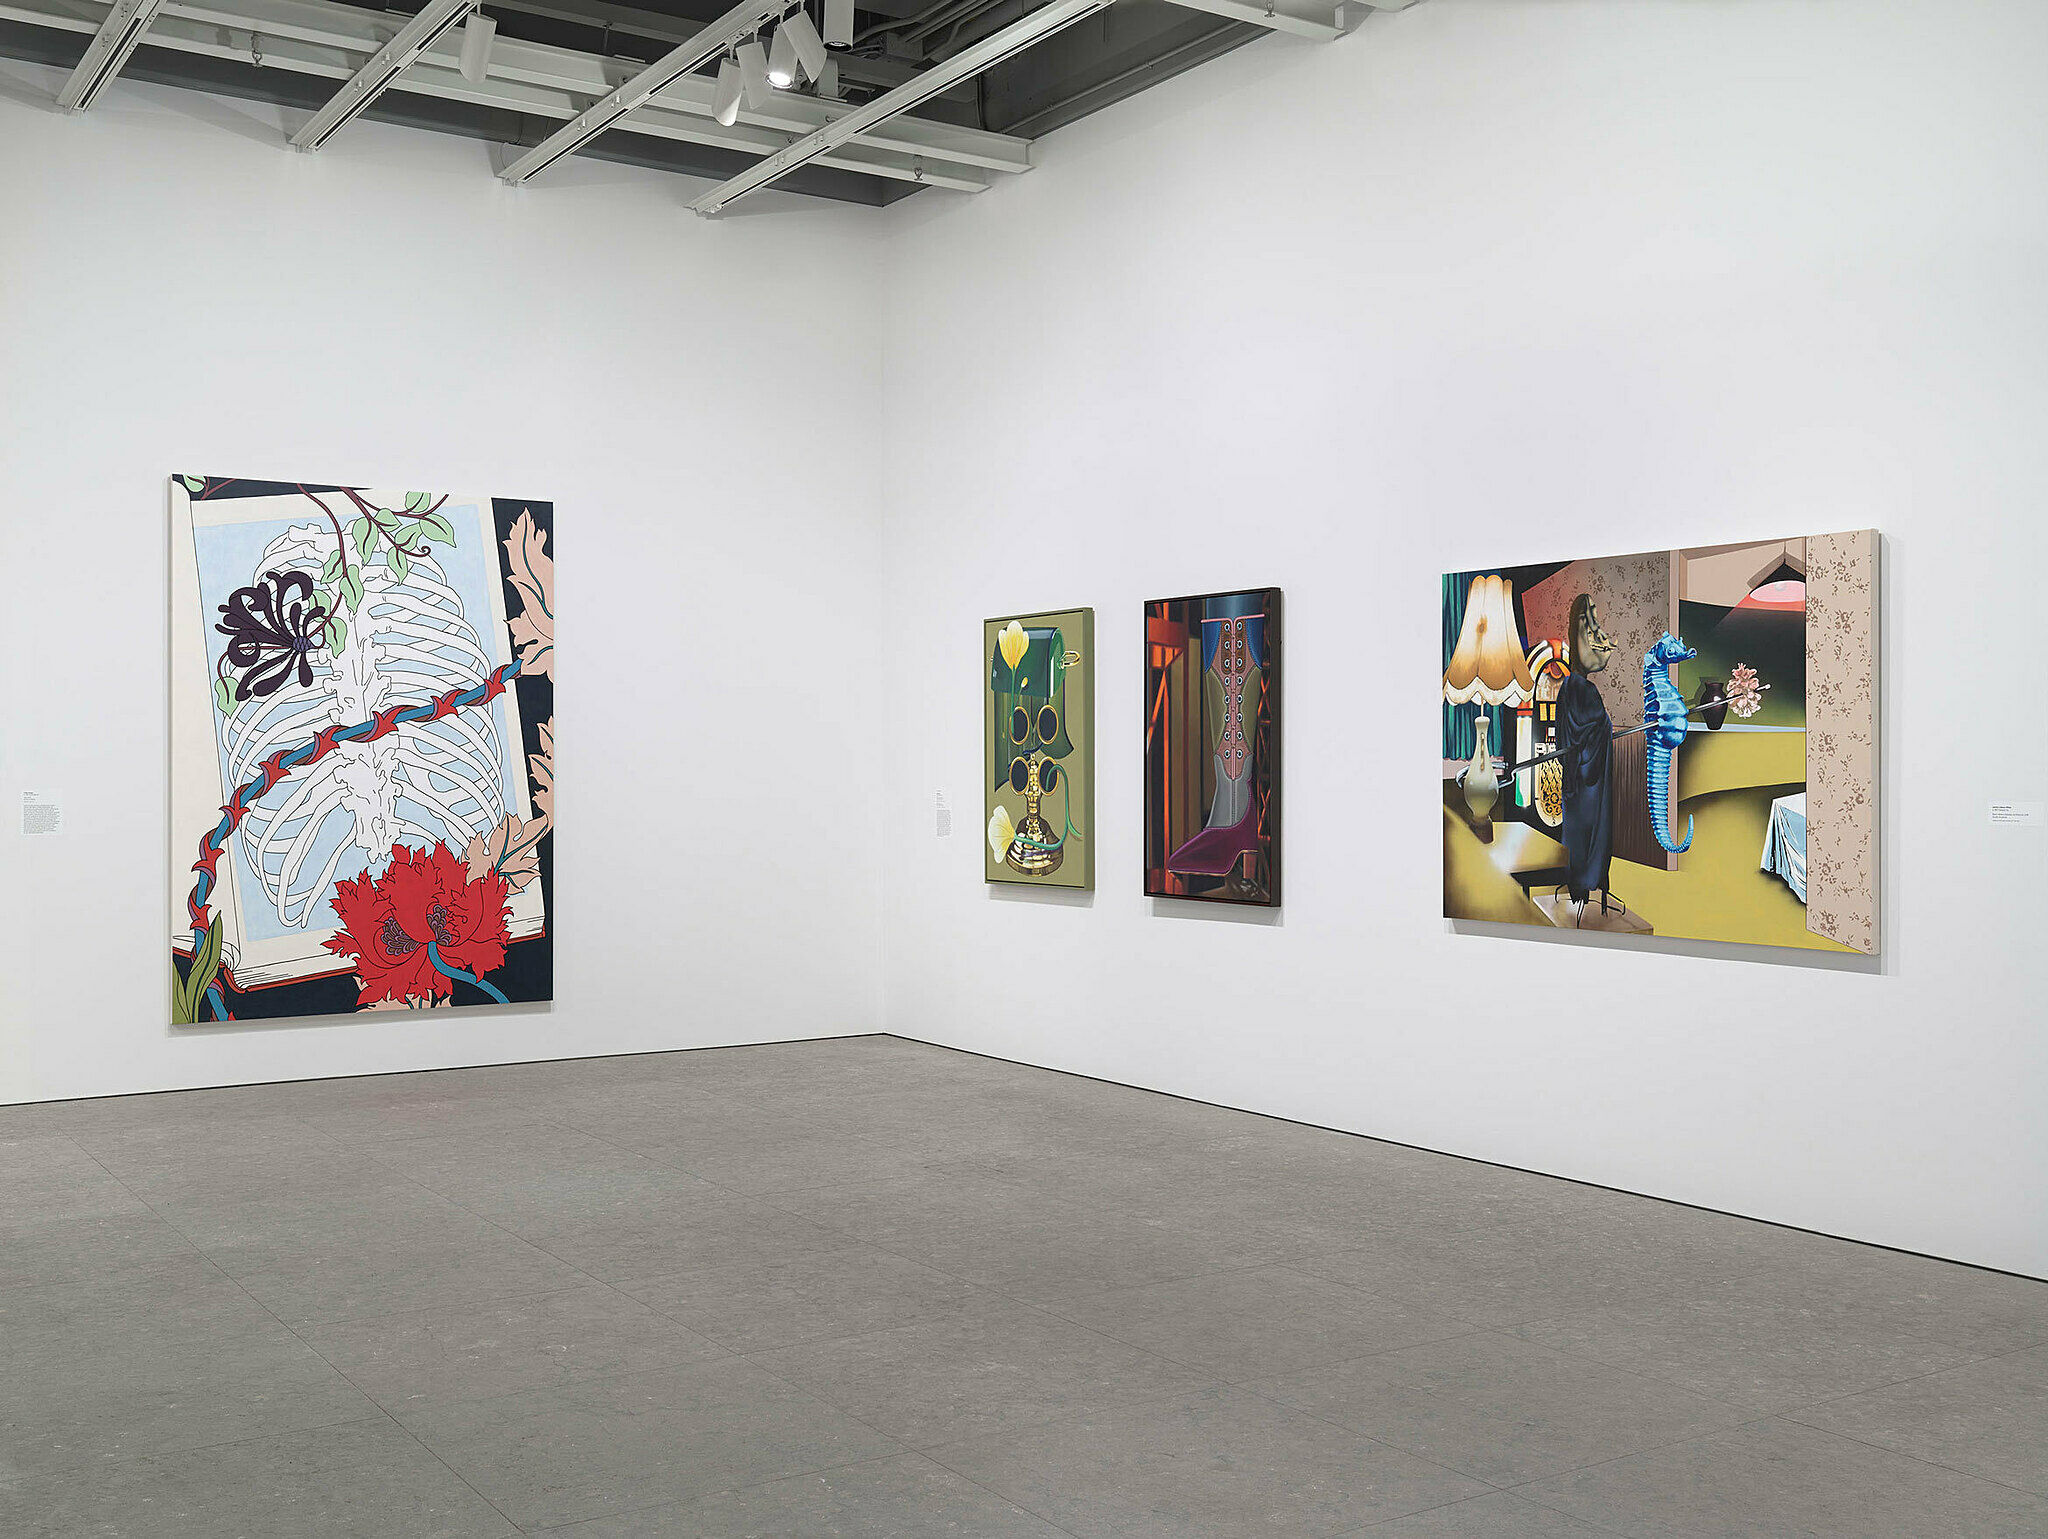 Four paintings on adjacent walls.